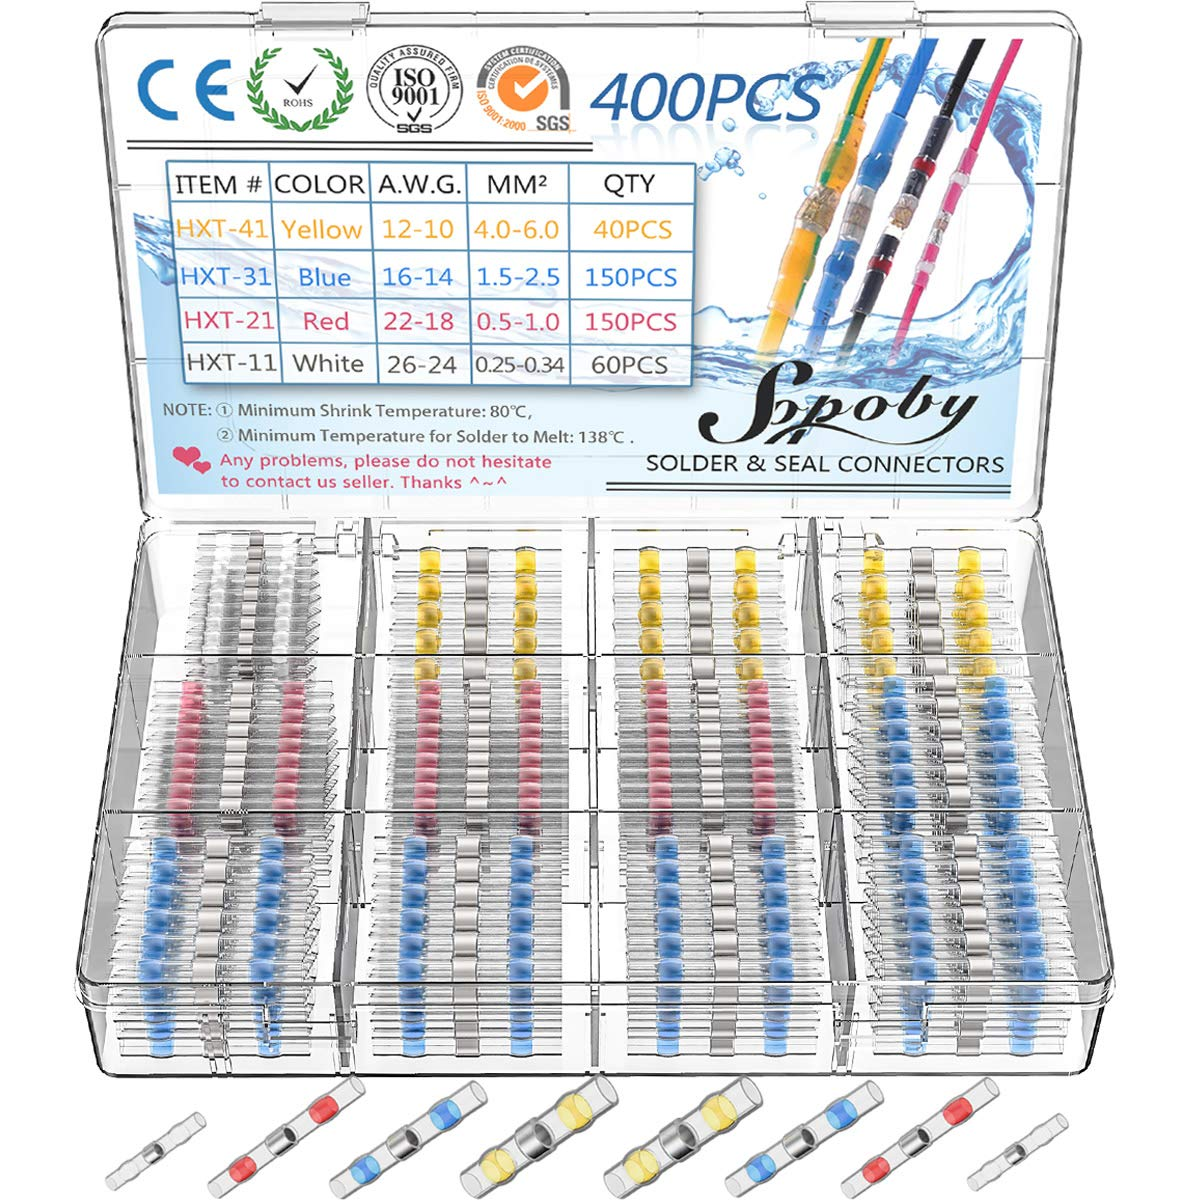 400PCS Solder Seal Wire Connectors - Sopoby Heat Shrink Solder Butt Connectors - Solder Connector Kit - Automotive Insulated Waterproof Electrical Wire Terminals